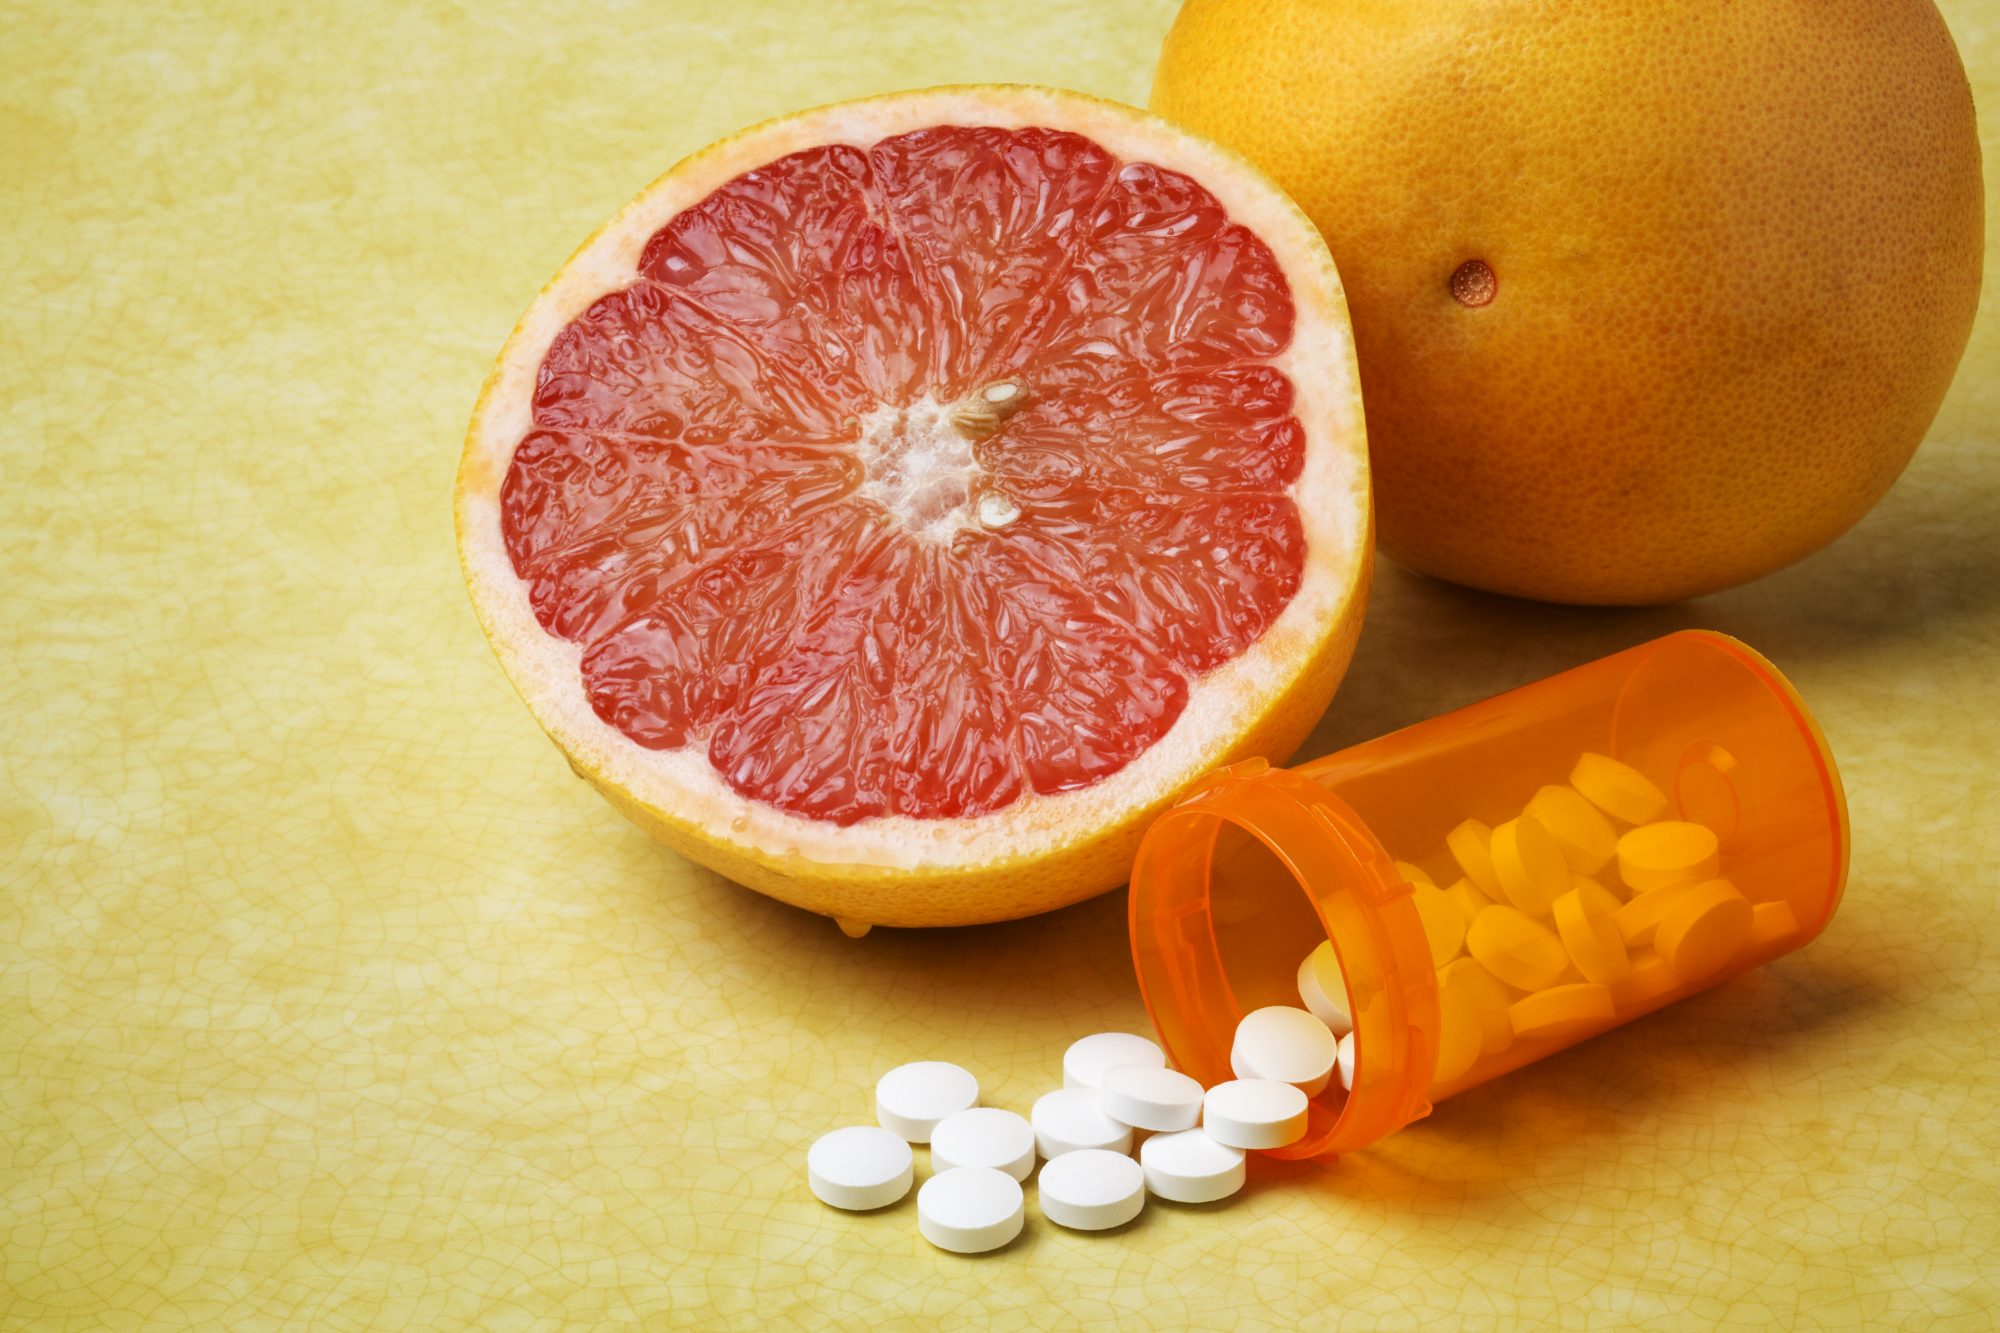 Grapefruit doesn't mix with allergy medications